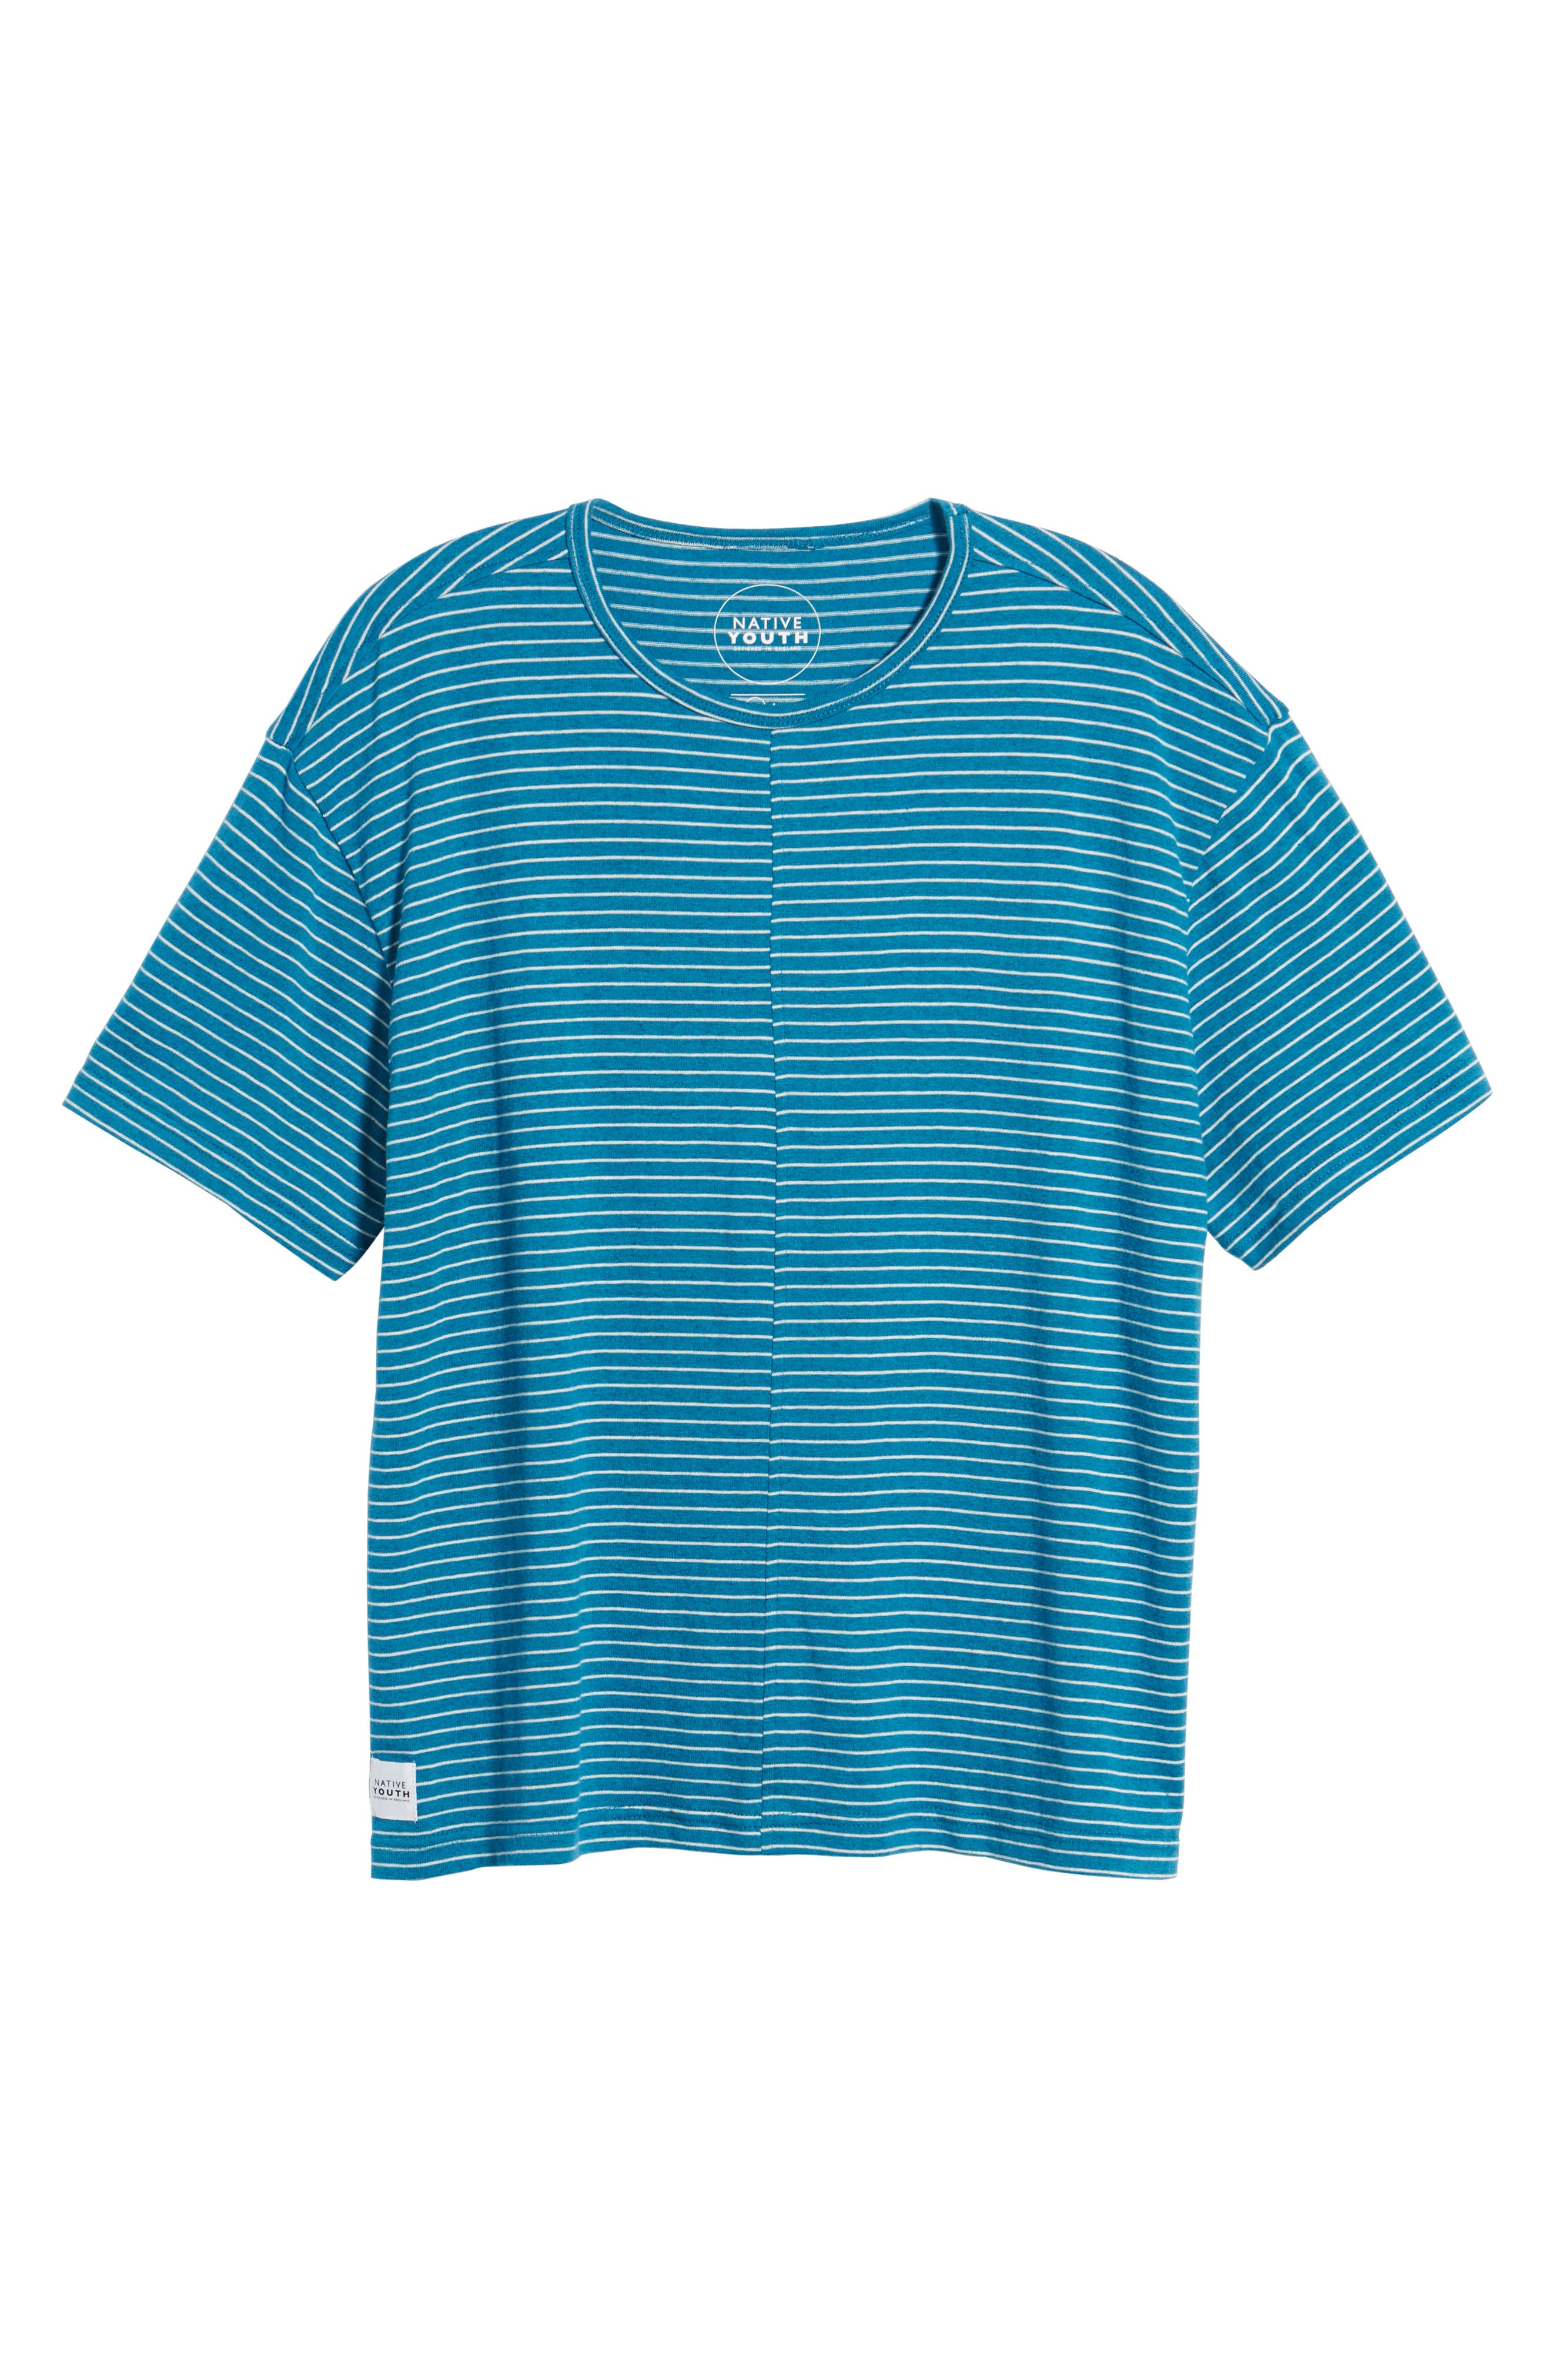 Boost T-Shirt,                             Alternate thumbnail 6, color,                             Teal